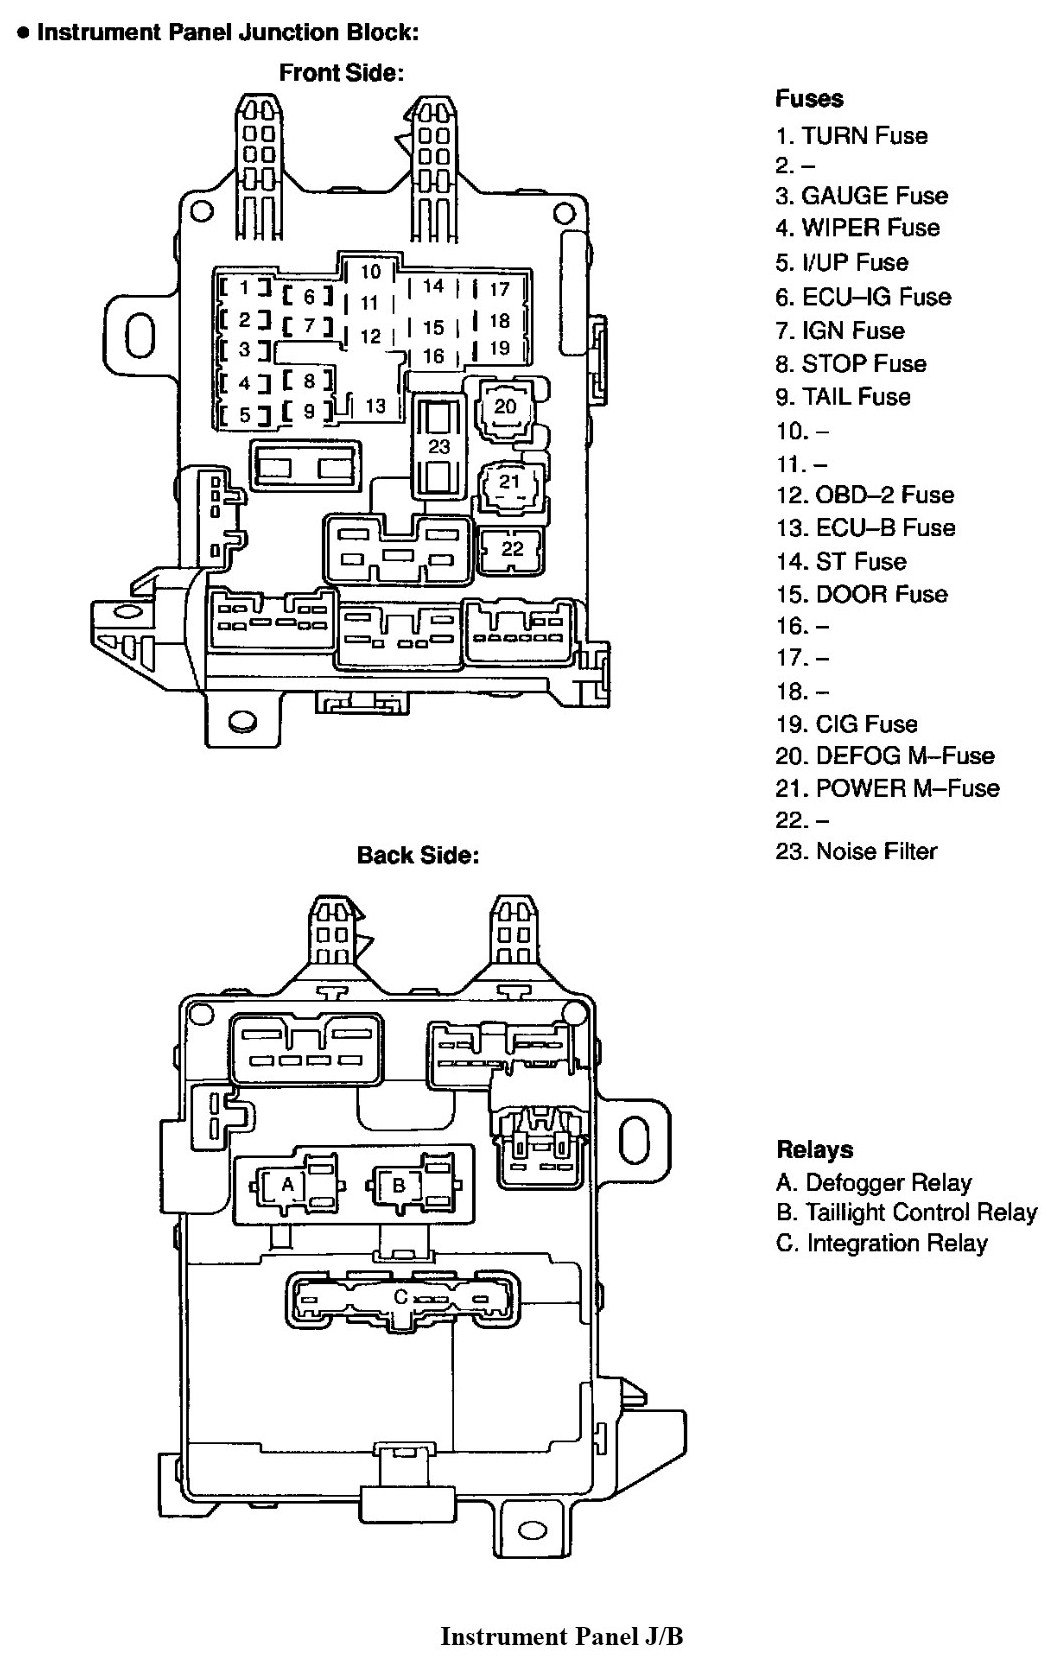 1999 Corolla Fuse Box Diagram Wiring Data 2002 Ford Focus In Toyota 2003 Jeep